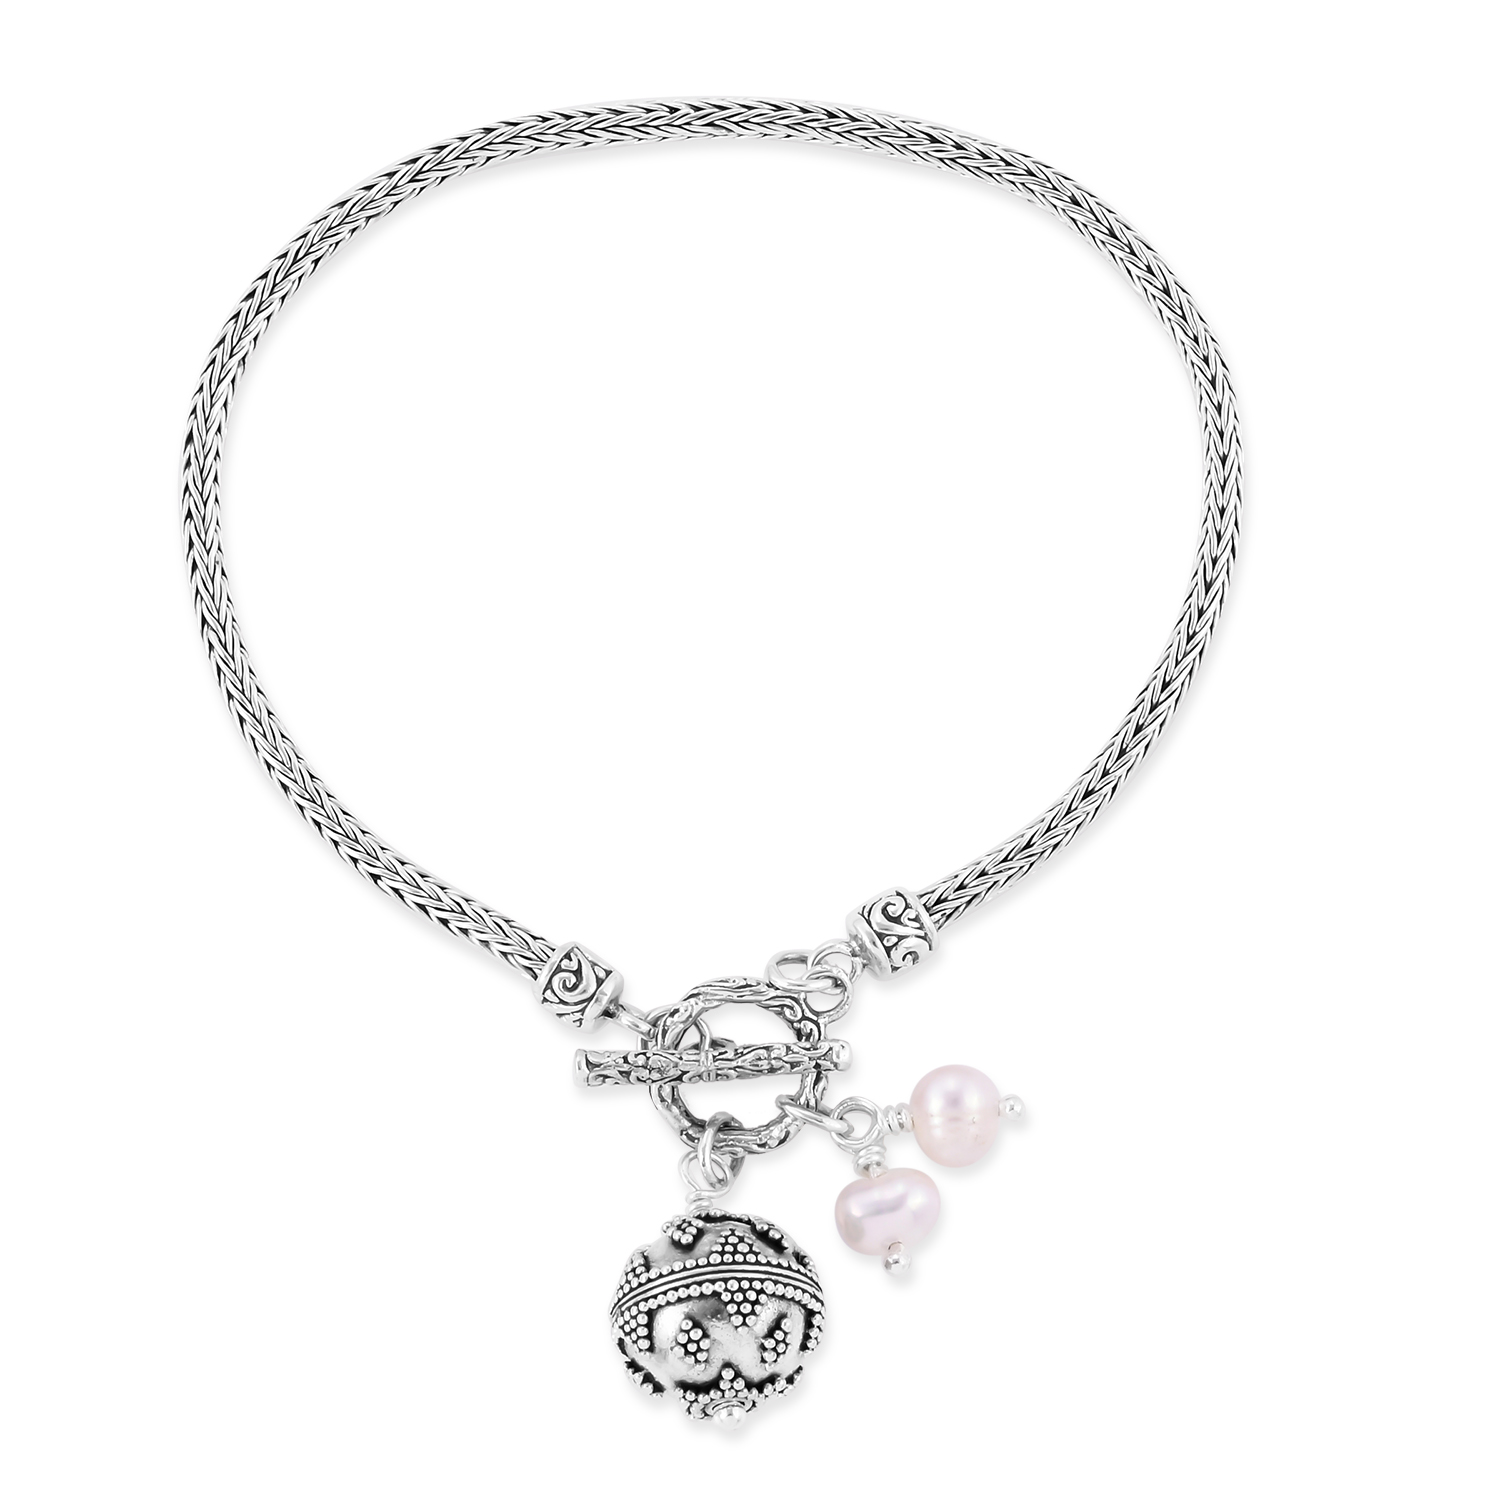 db4328c3085bdd Bali Legacy Collection Freshwater Pearl Sterling Silver Charm ...